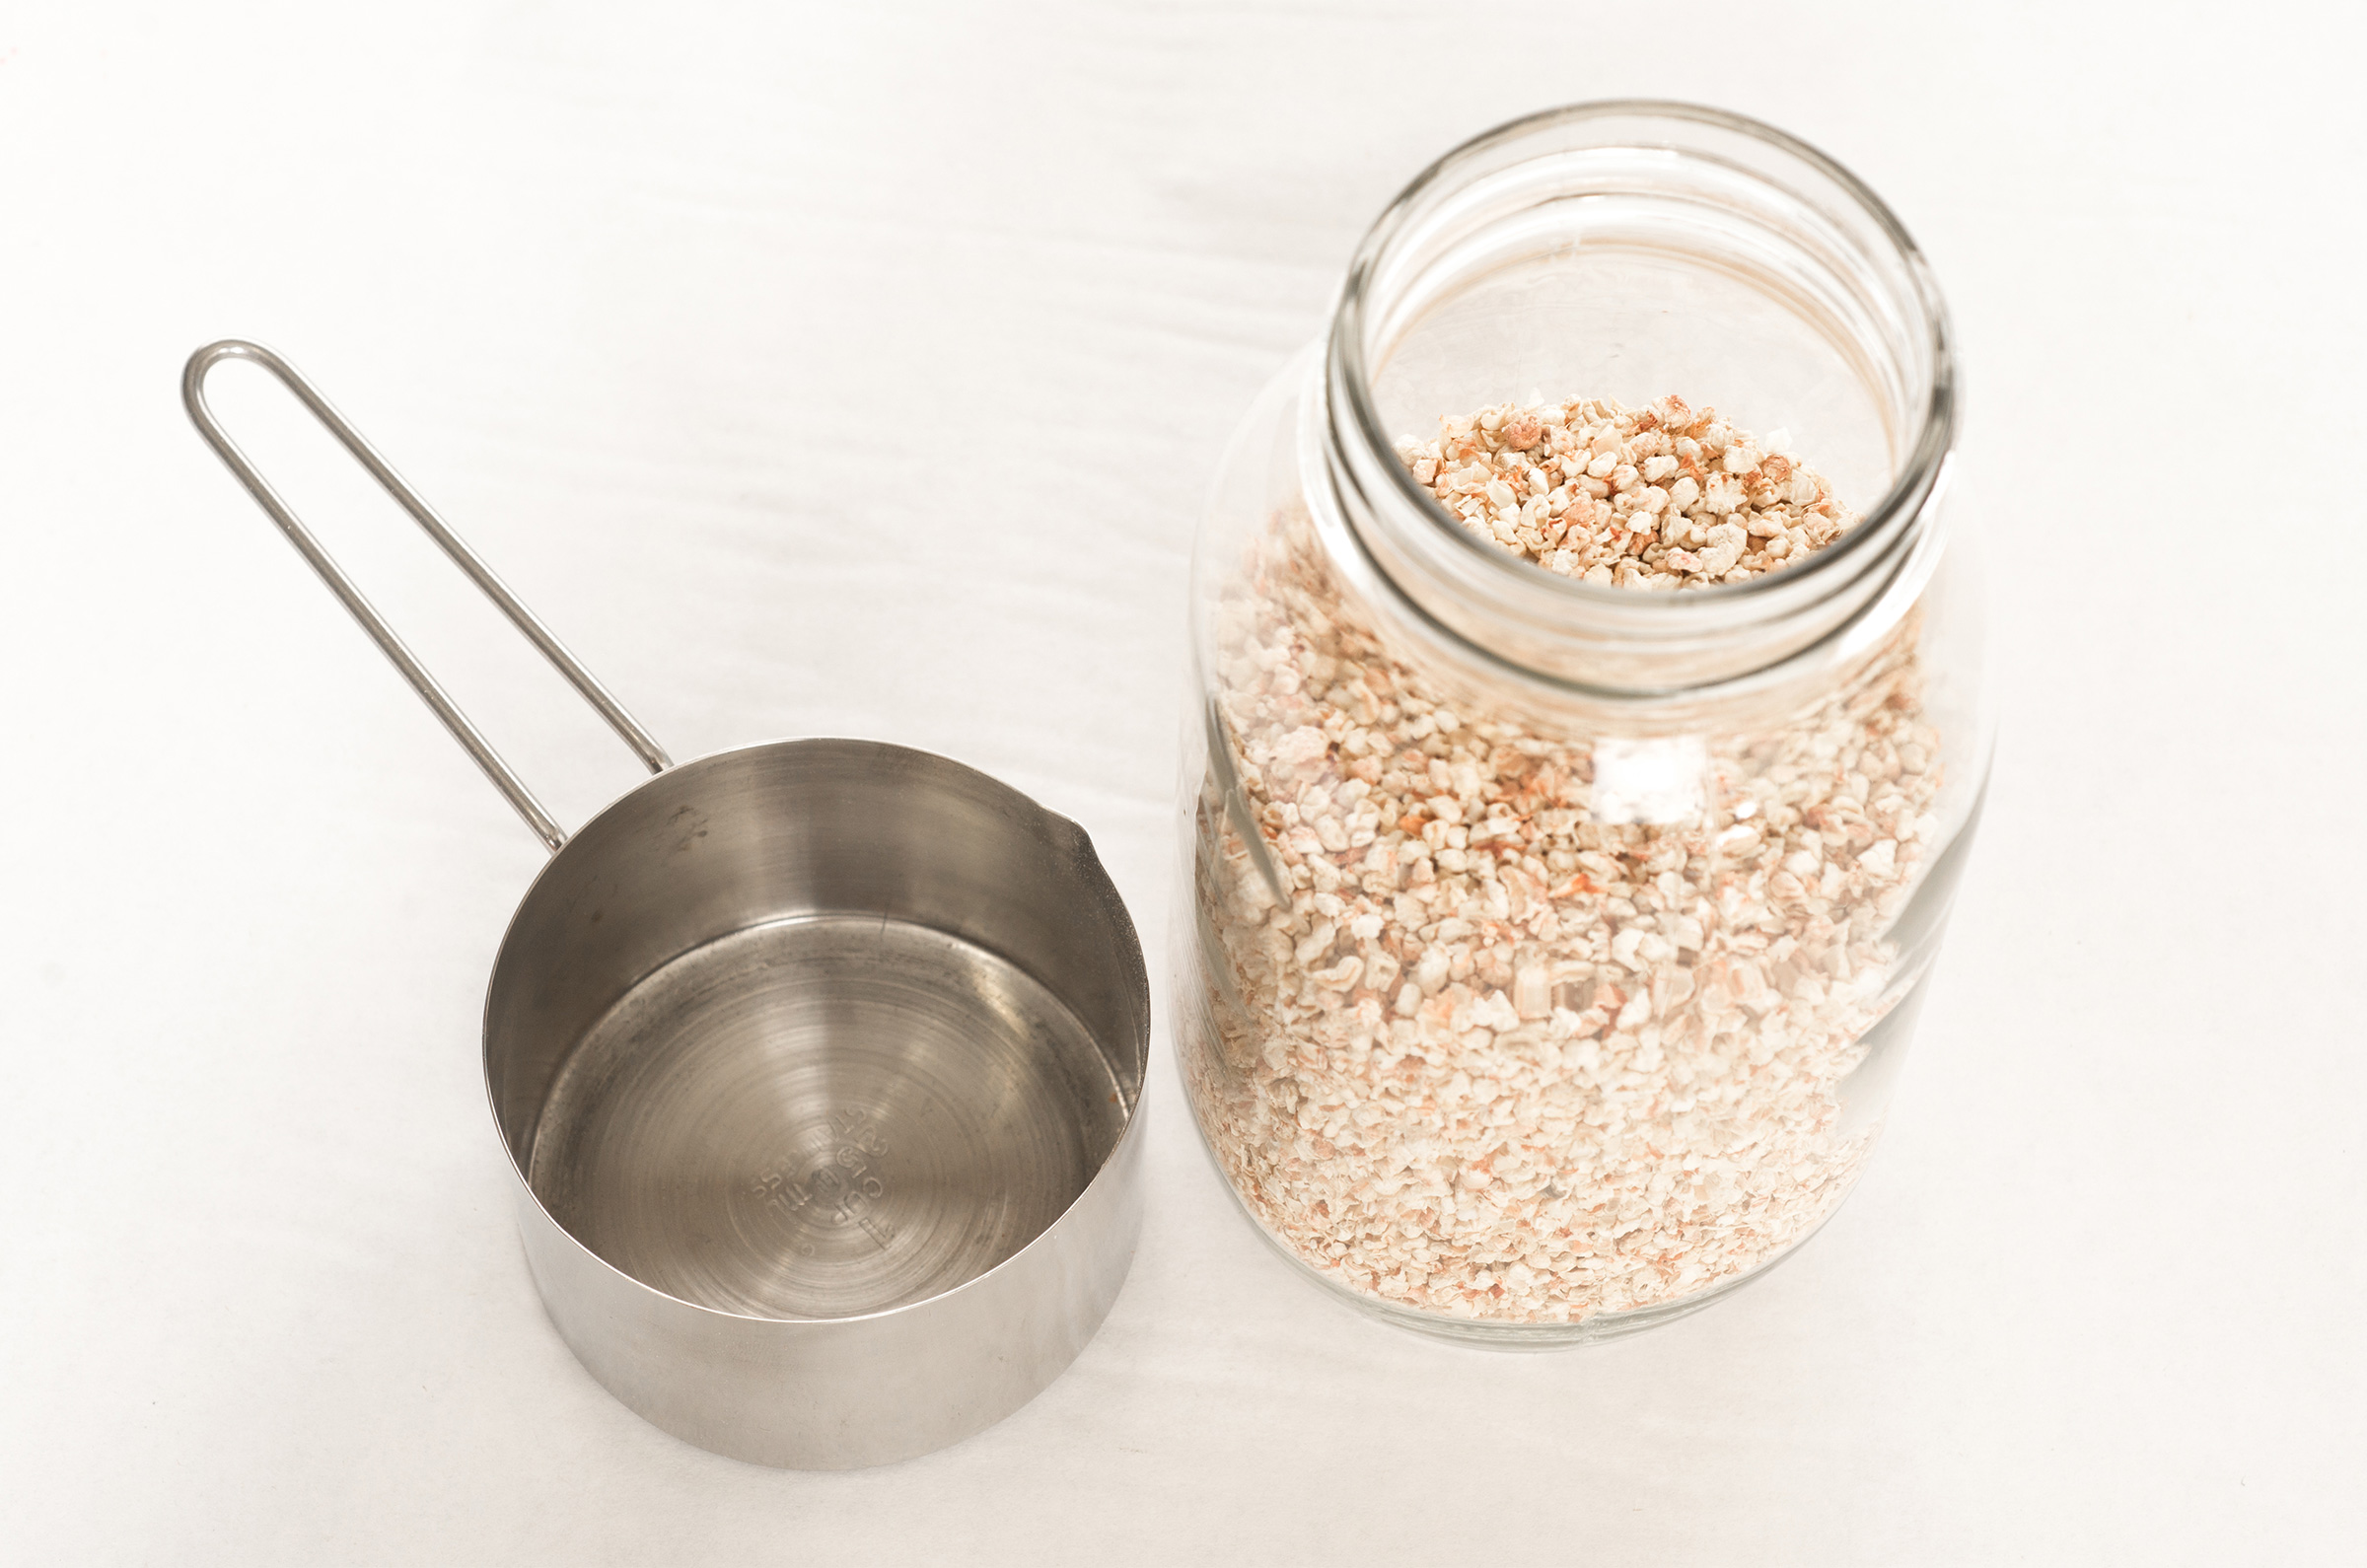 measure sachet base and pour in jar